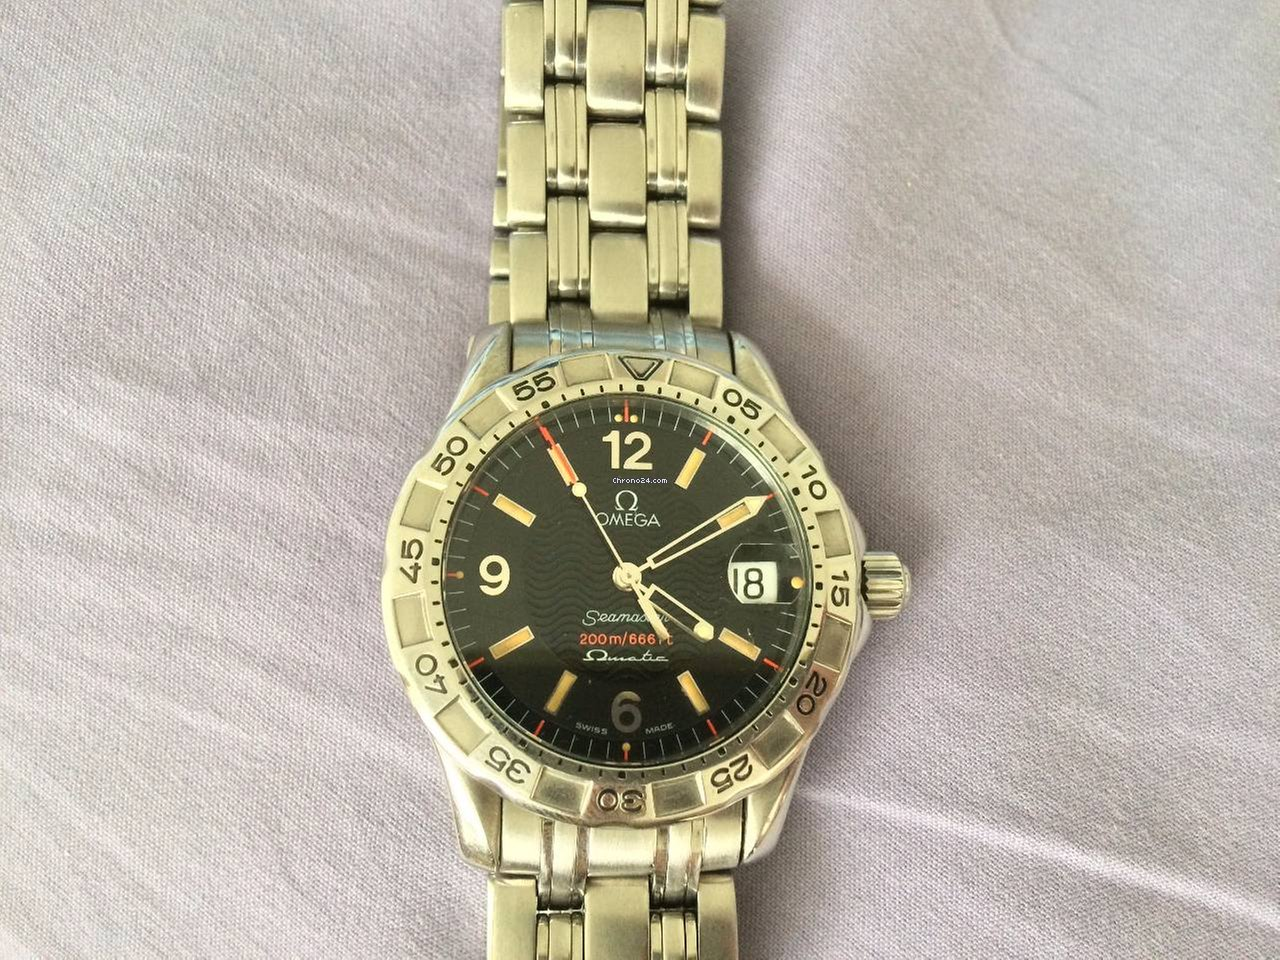 e9b6a9641fb Omega Seamaster 200m Omegamatic Auto Quartz Watch 2514.50